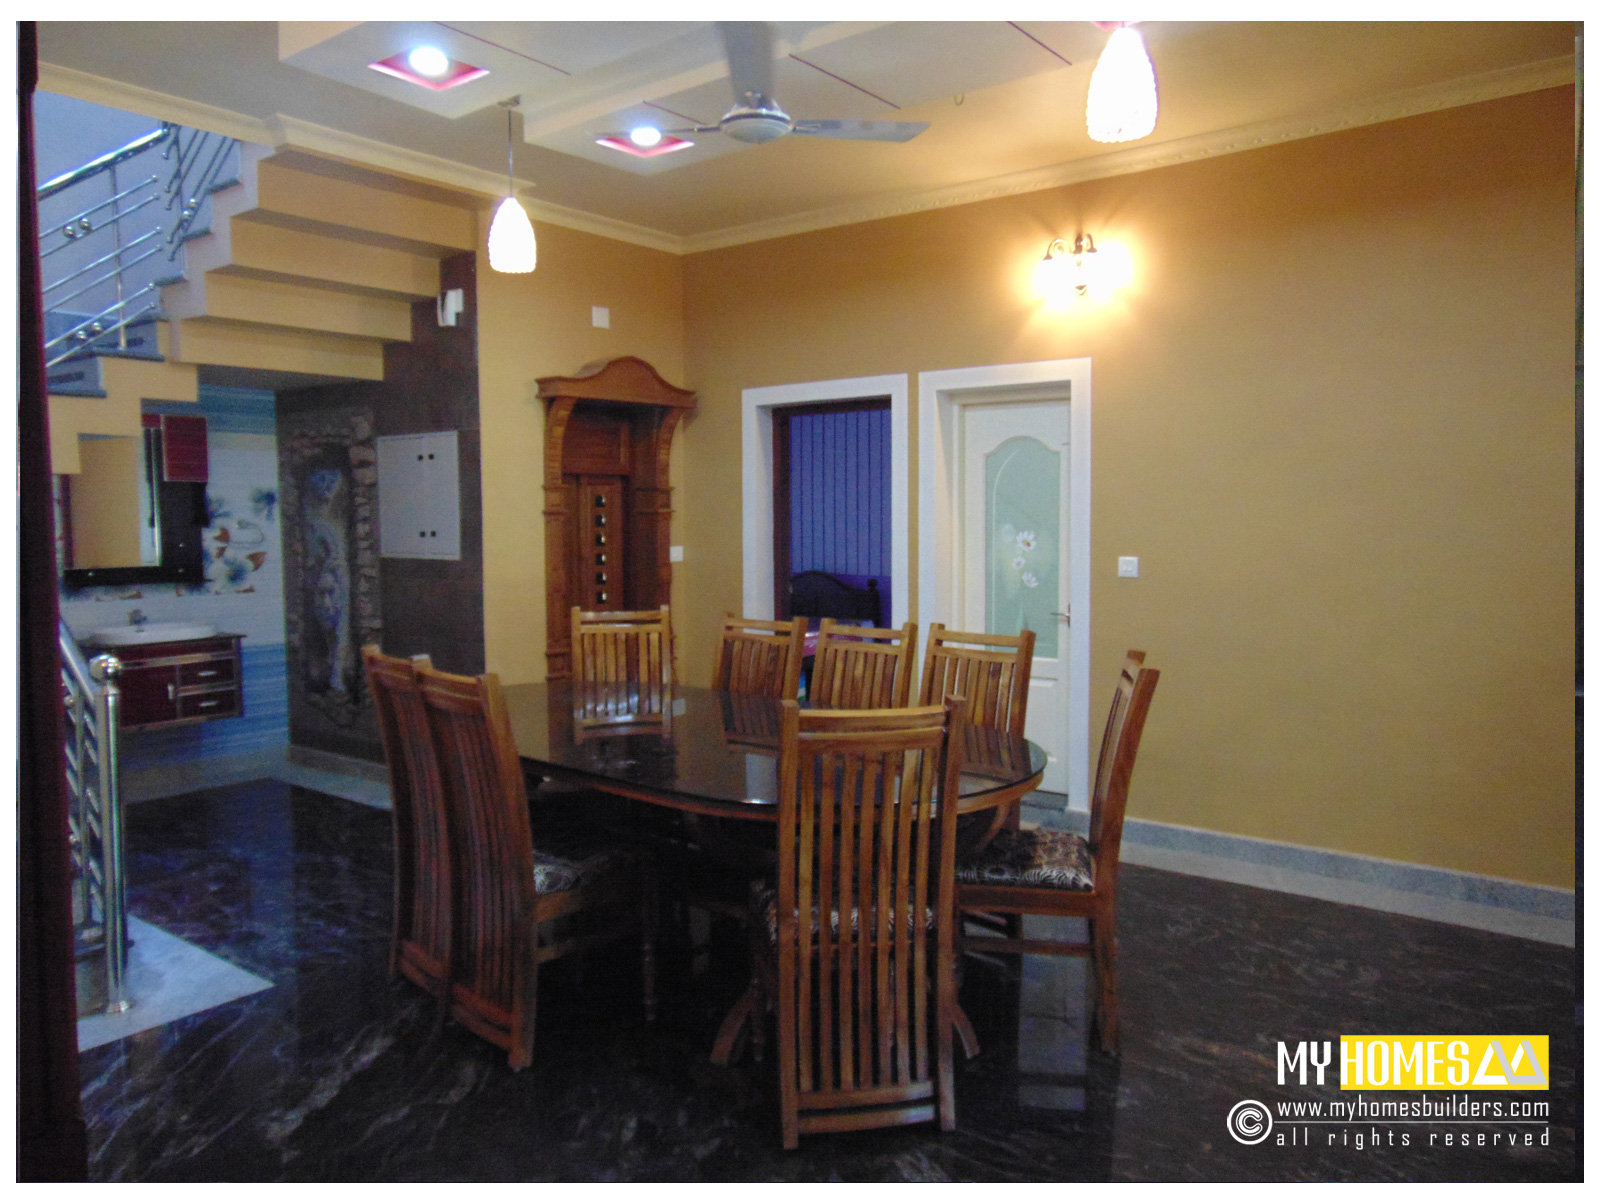 dining room table, kerala house dining room interior, Kerala rooms home interior